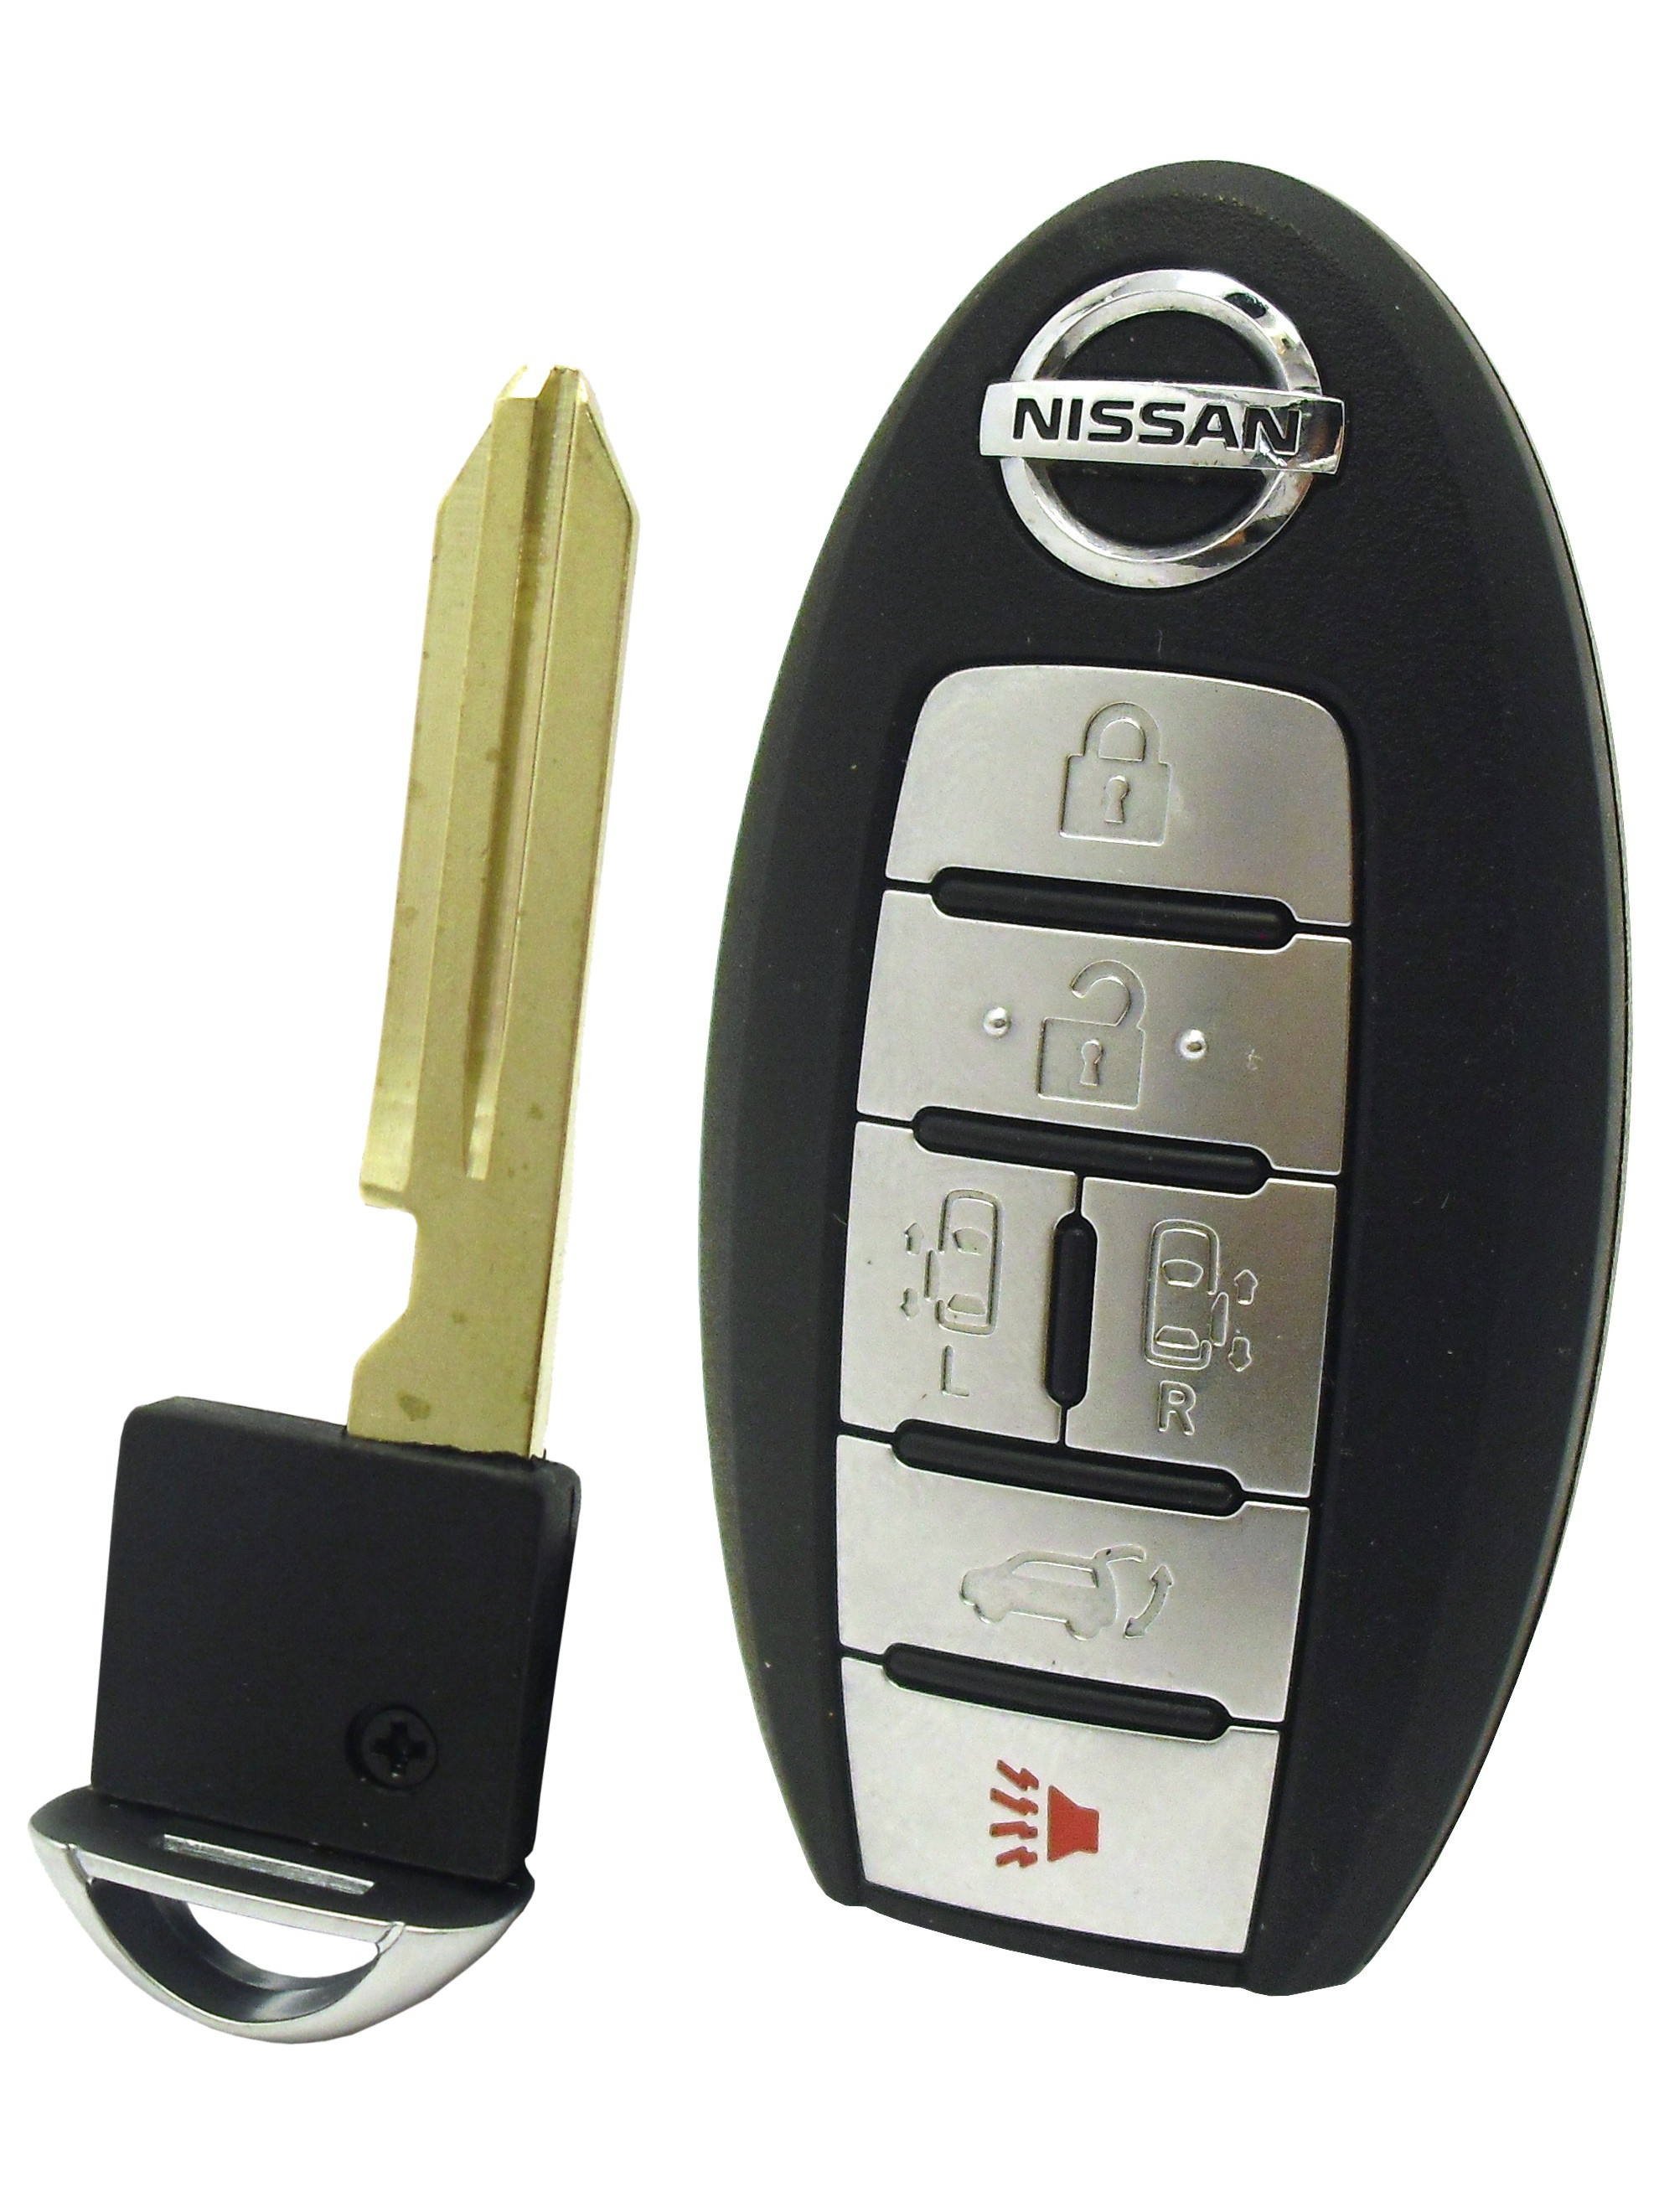 Nissan Remote Entry Smart Key - 6 Button w/ Dual Sliding Doors